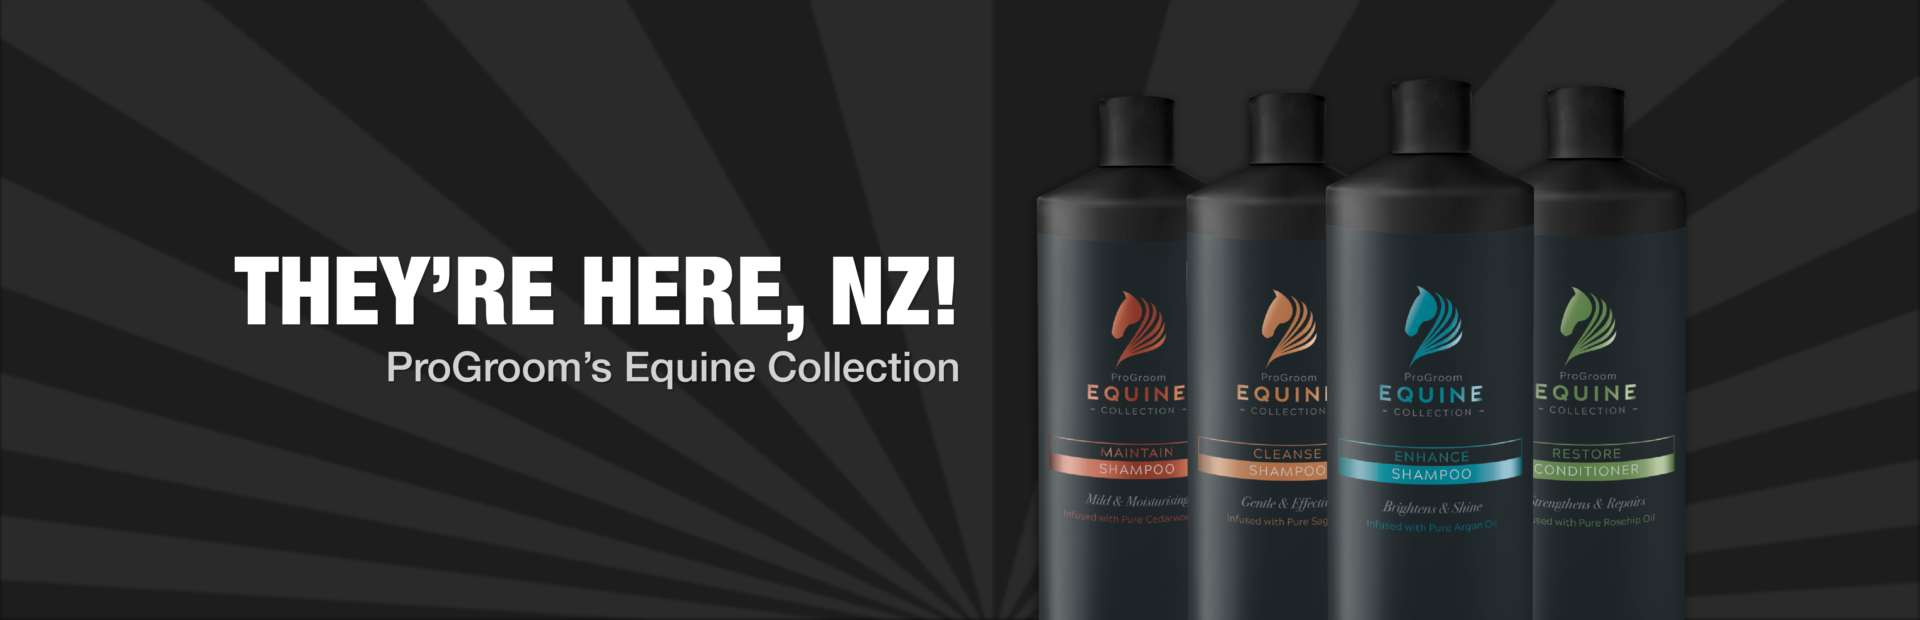 Hnz Equine Collection 21